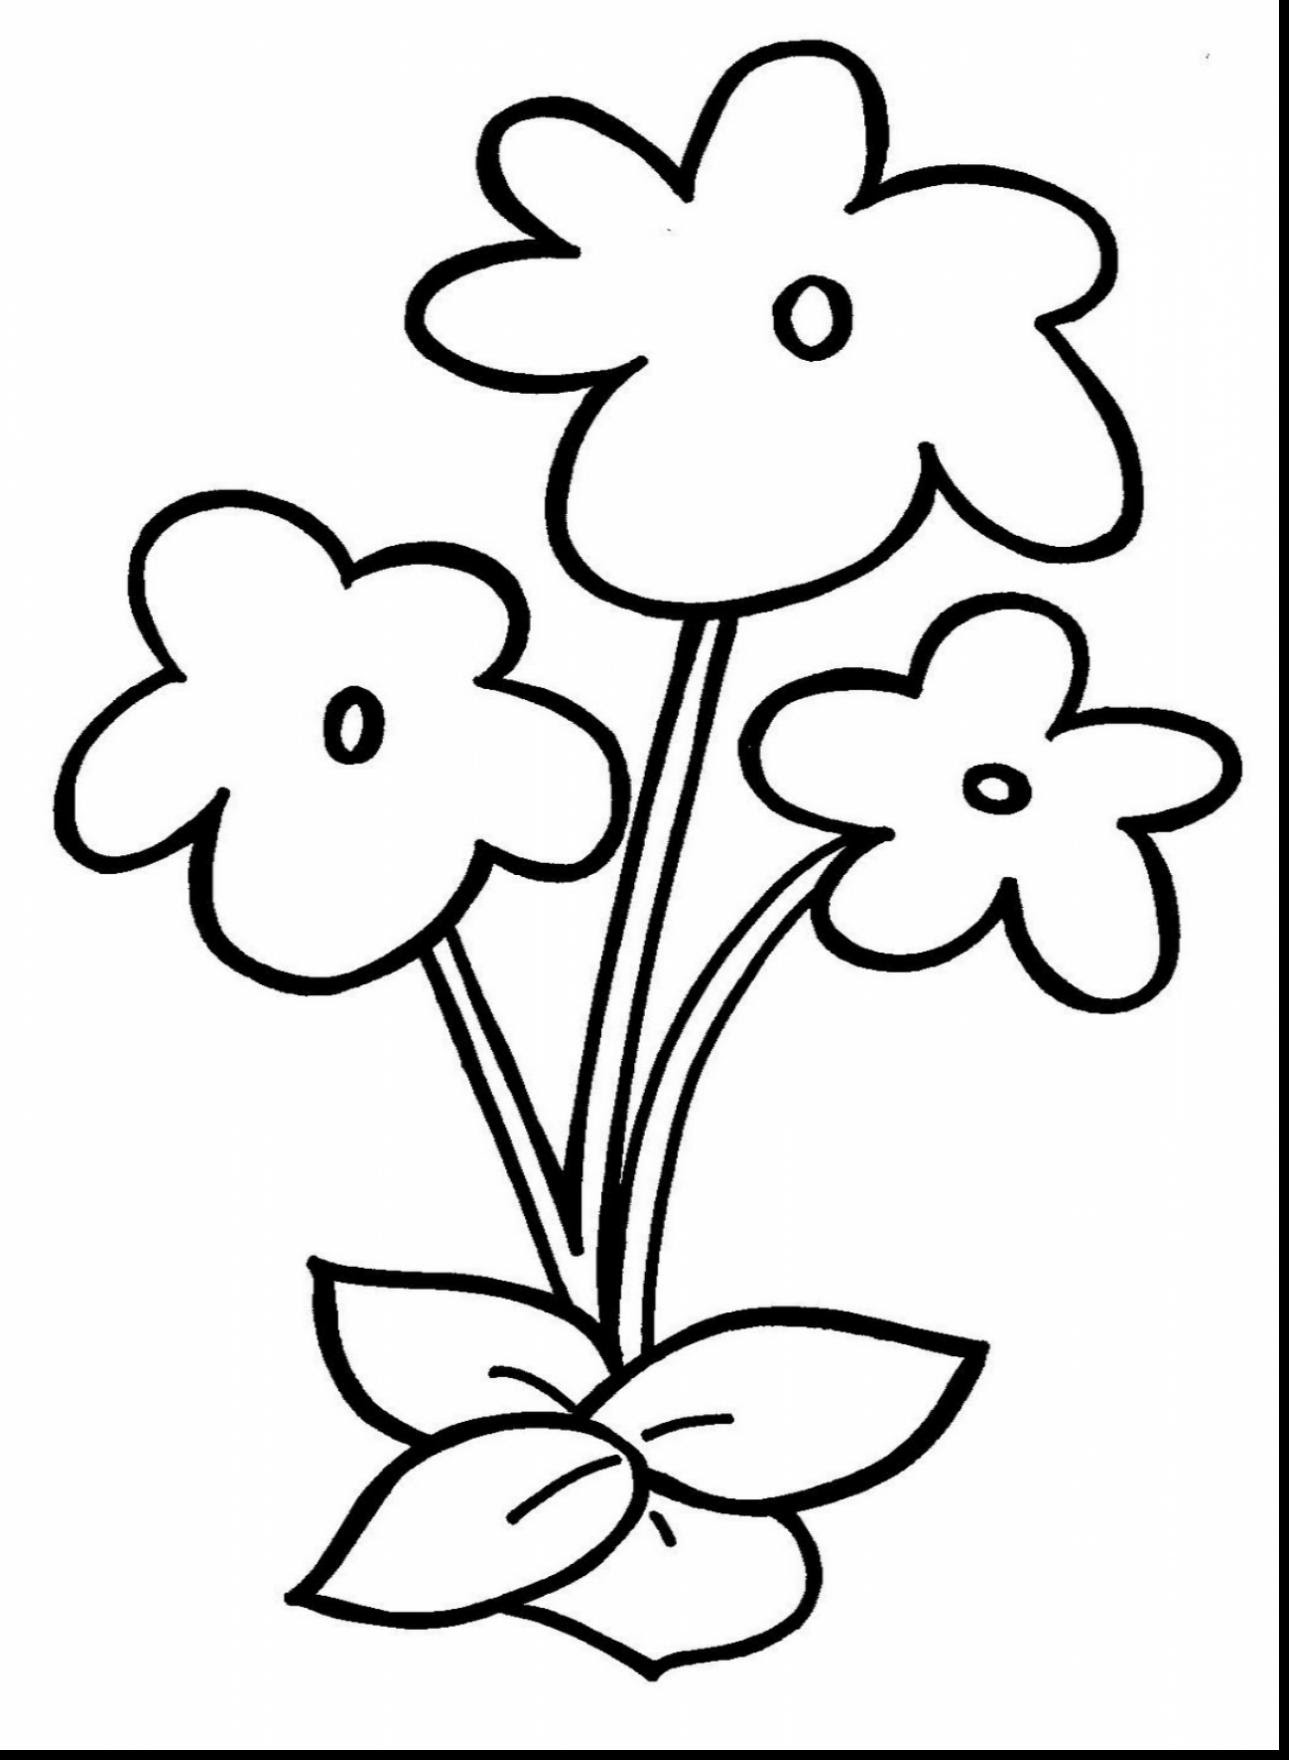 Flower Coloring Pages at GetDrawings | Free download